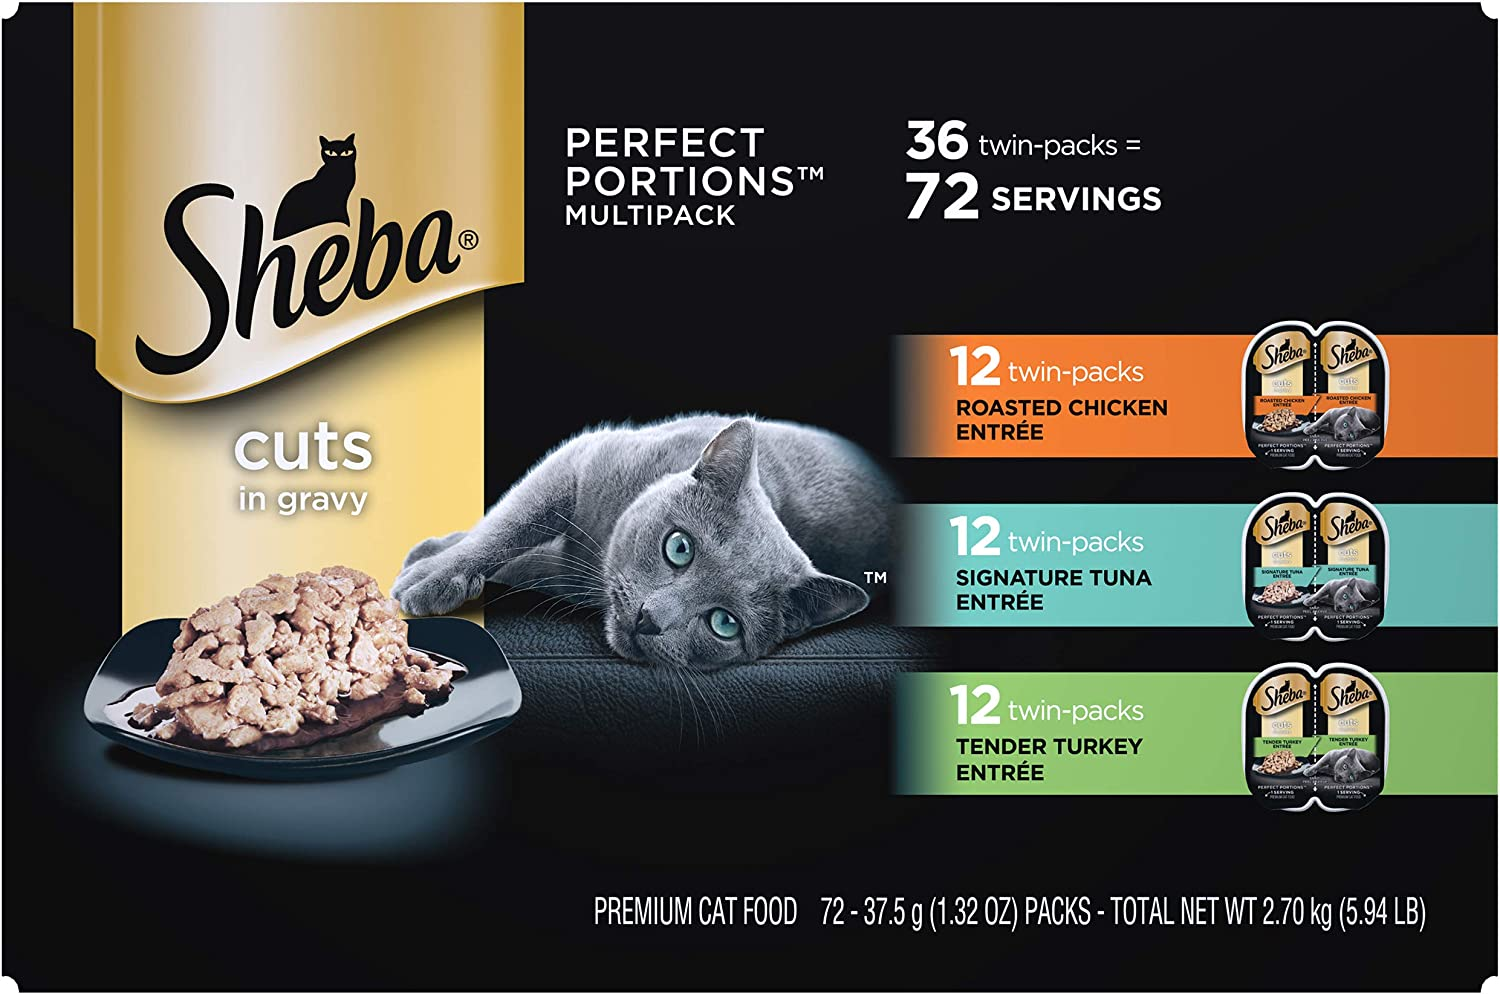 SHEBA Perfect PORTIONS Soft Wet Cat Food Cuts in Gravy Roasted Chicken Entrée, Signature Tuna Entrée, Tender Turkey Entrée Variety Pack, (36) 2.6 oz. Easy Peel Twin-Pack Trays